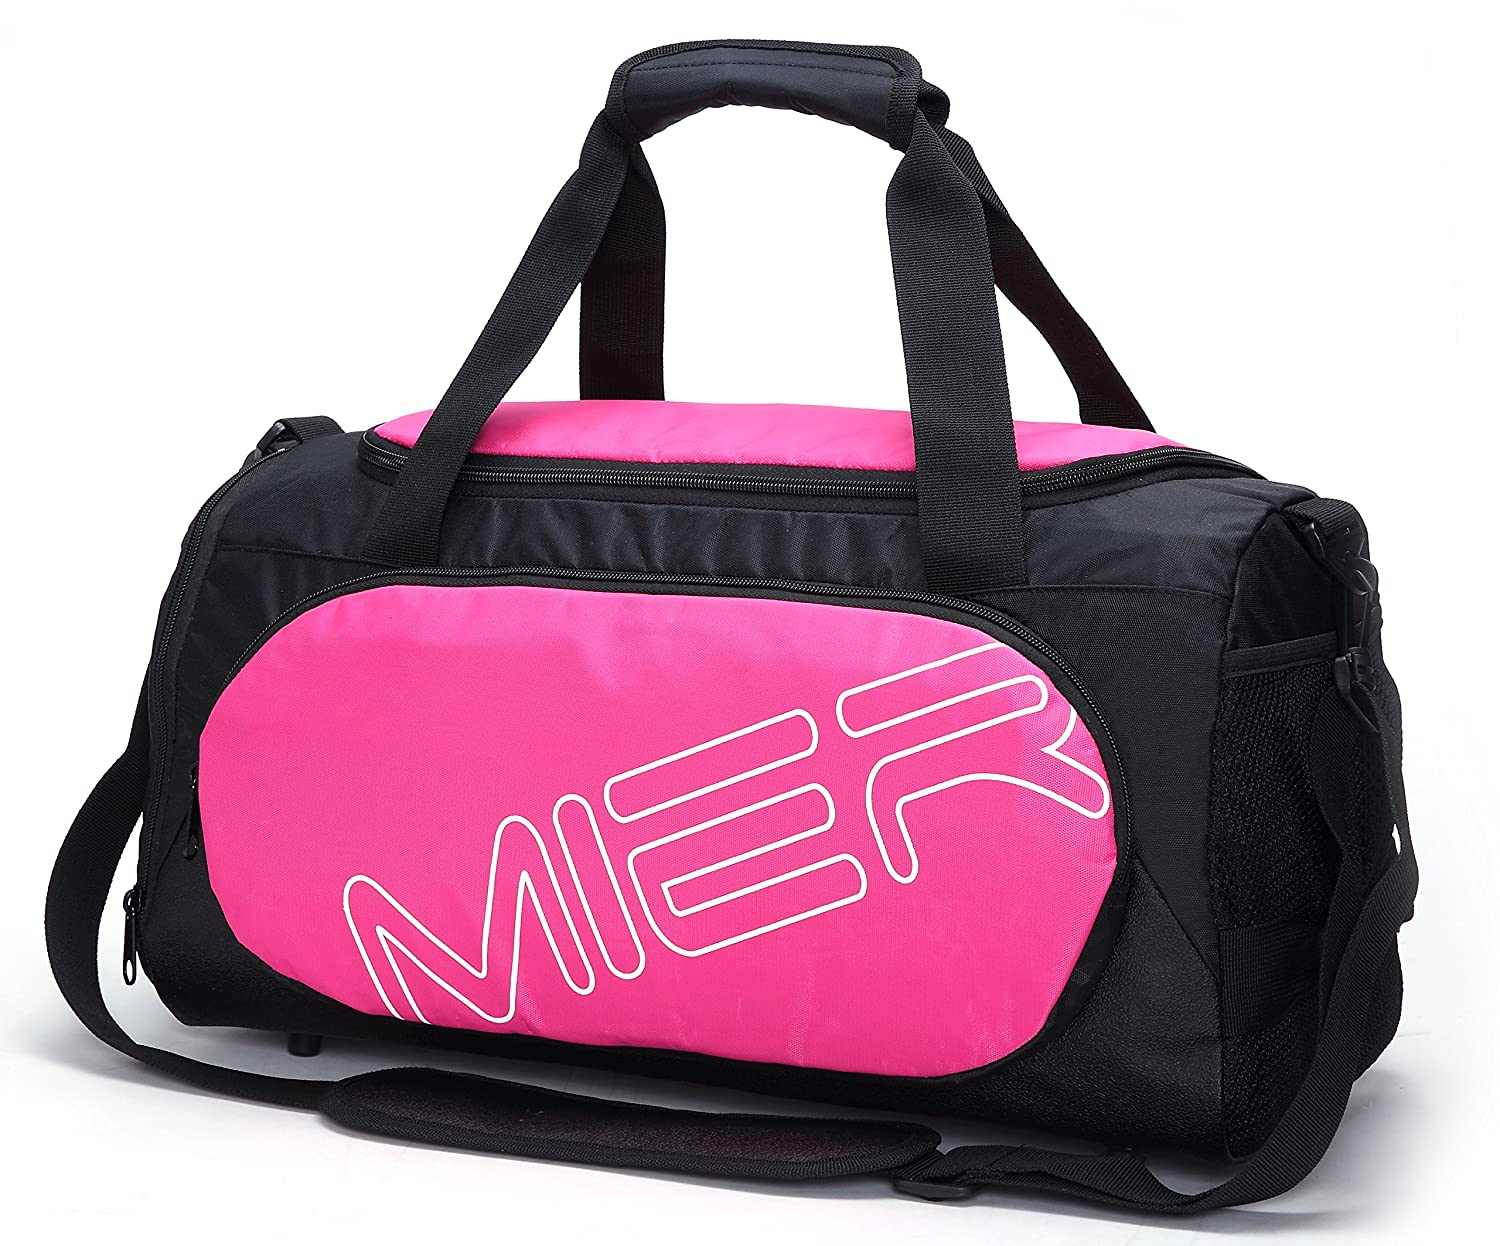 f7c5951c368 MIER Gym Bag Sports Duffel for Men and Women with Shoe Compartment, 25L  (Pink)